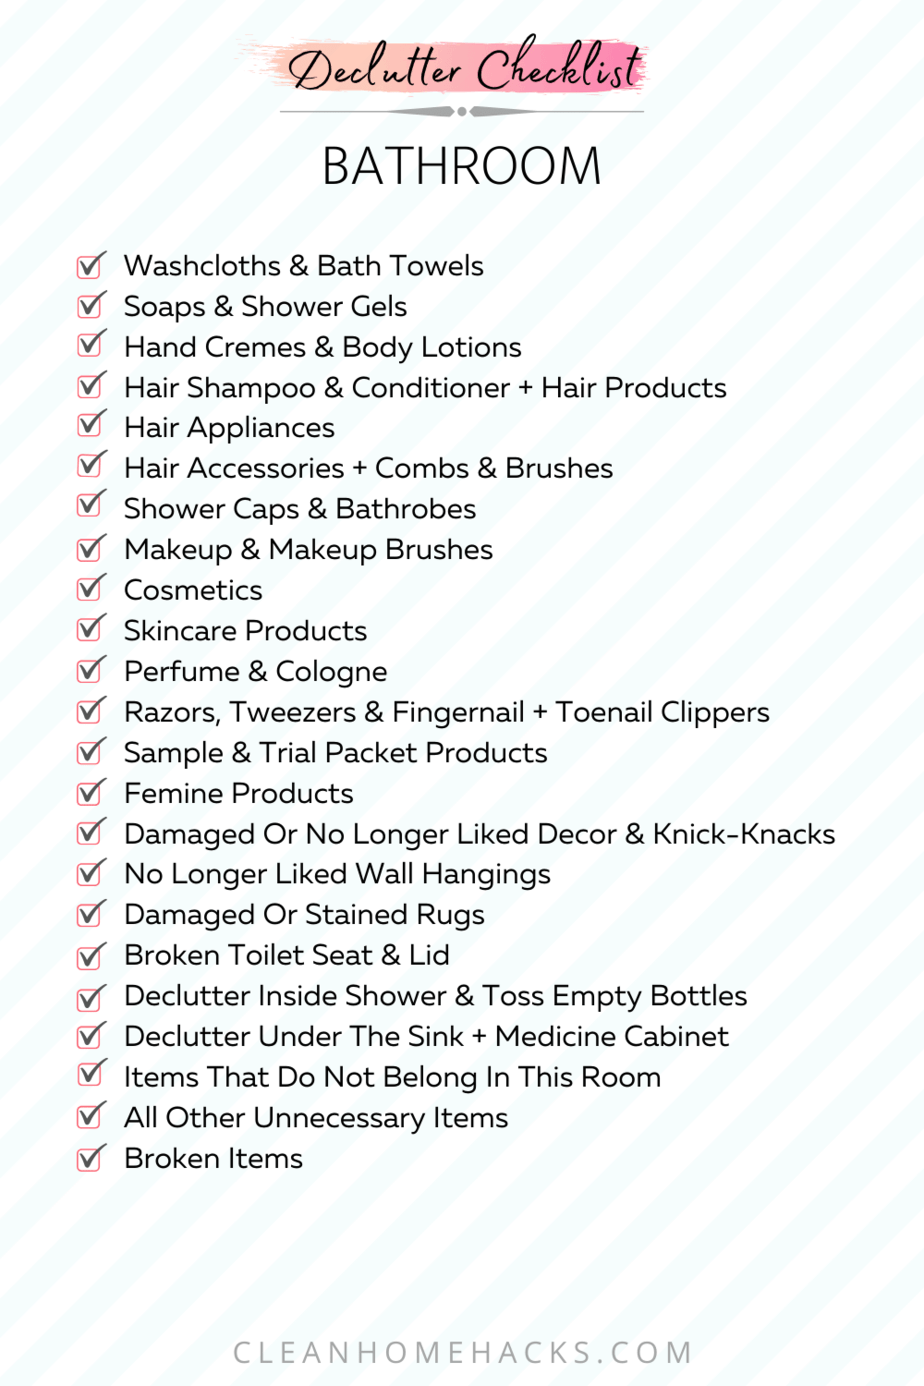 itemized list to declutter bathroom